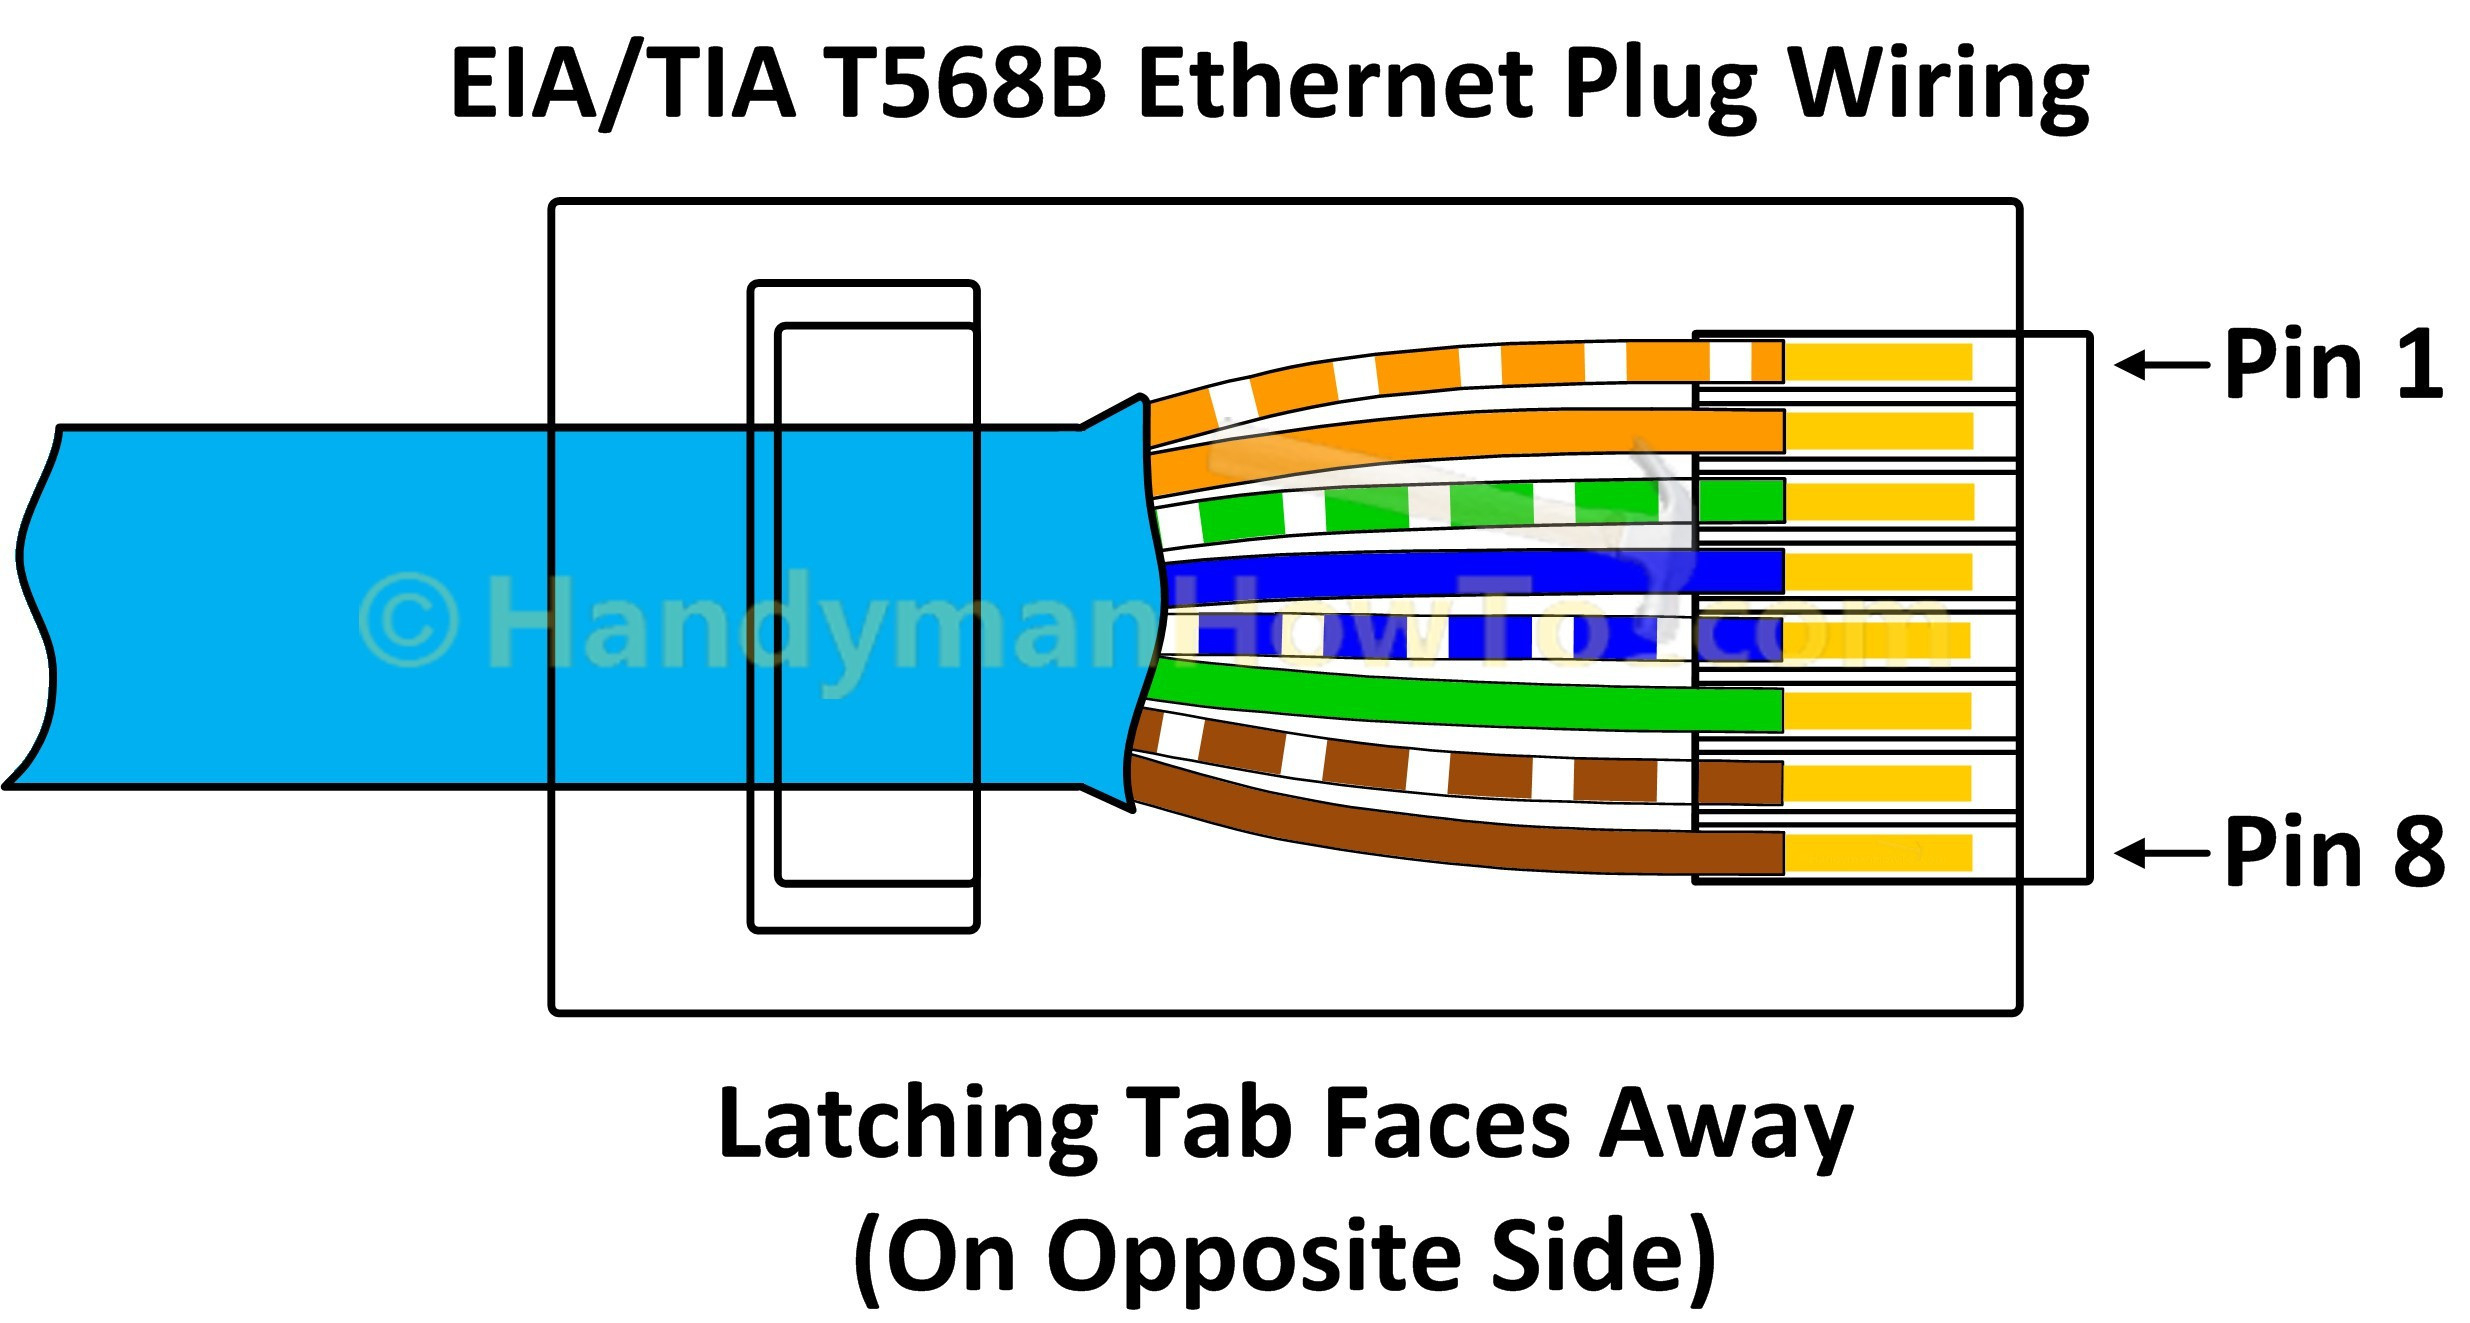 Cat 5 Wiring Diagram Pdf Download | Wiring Diagram Sample